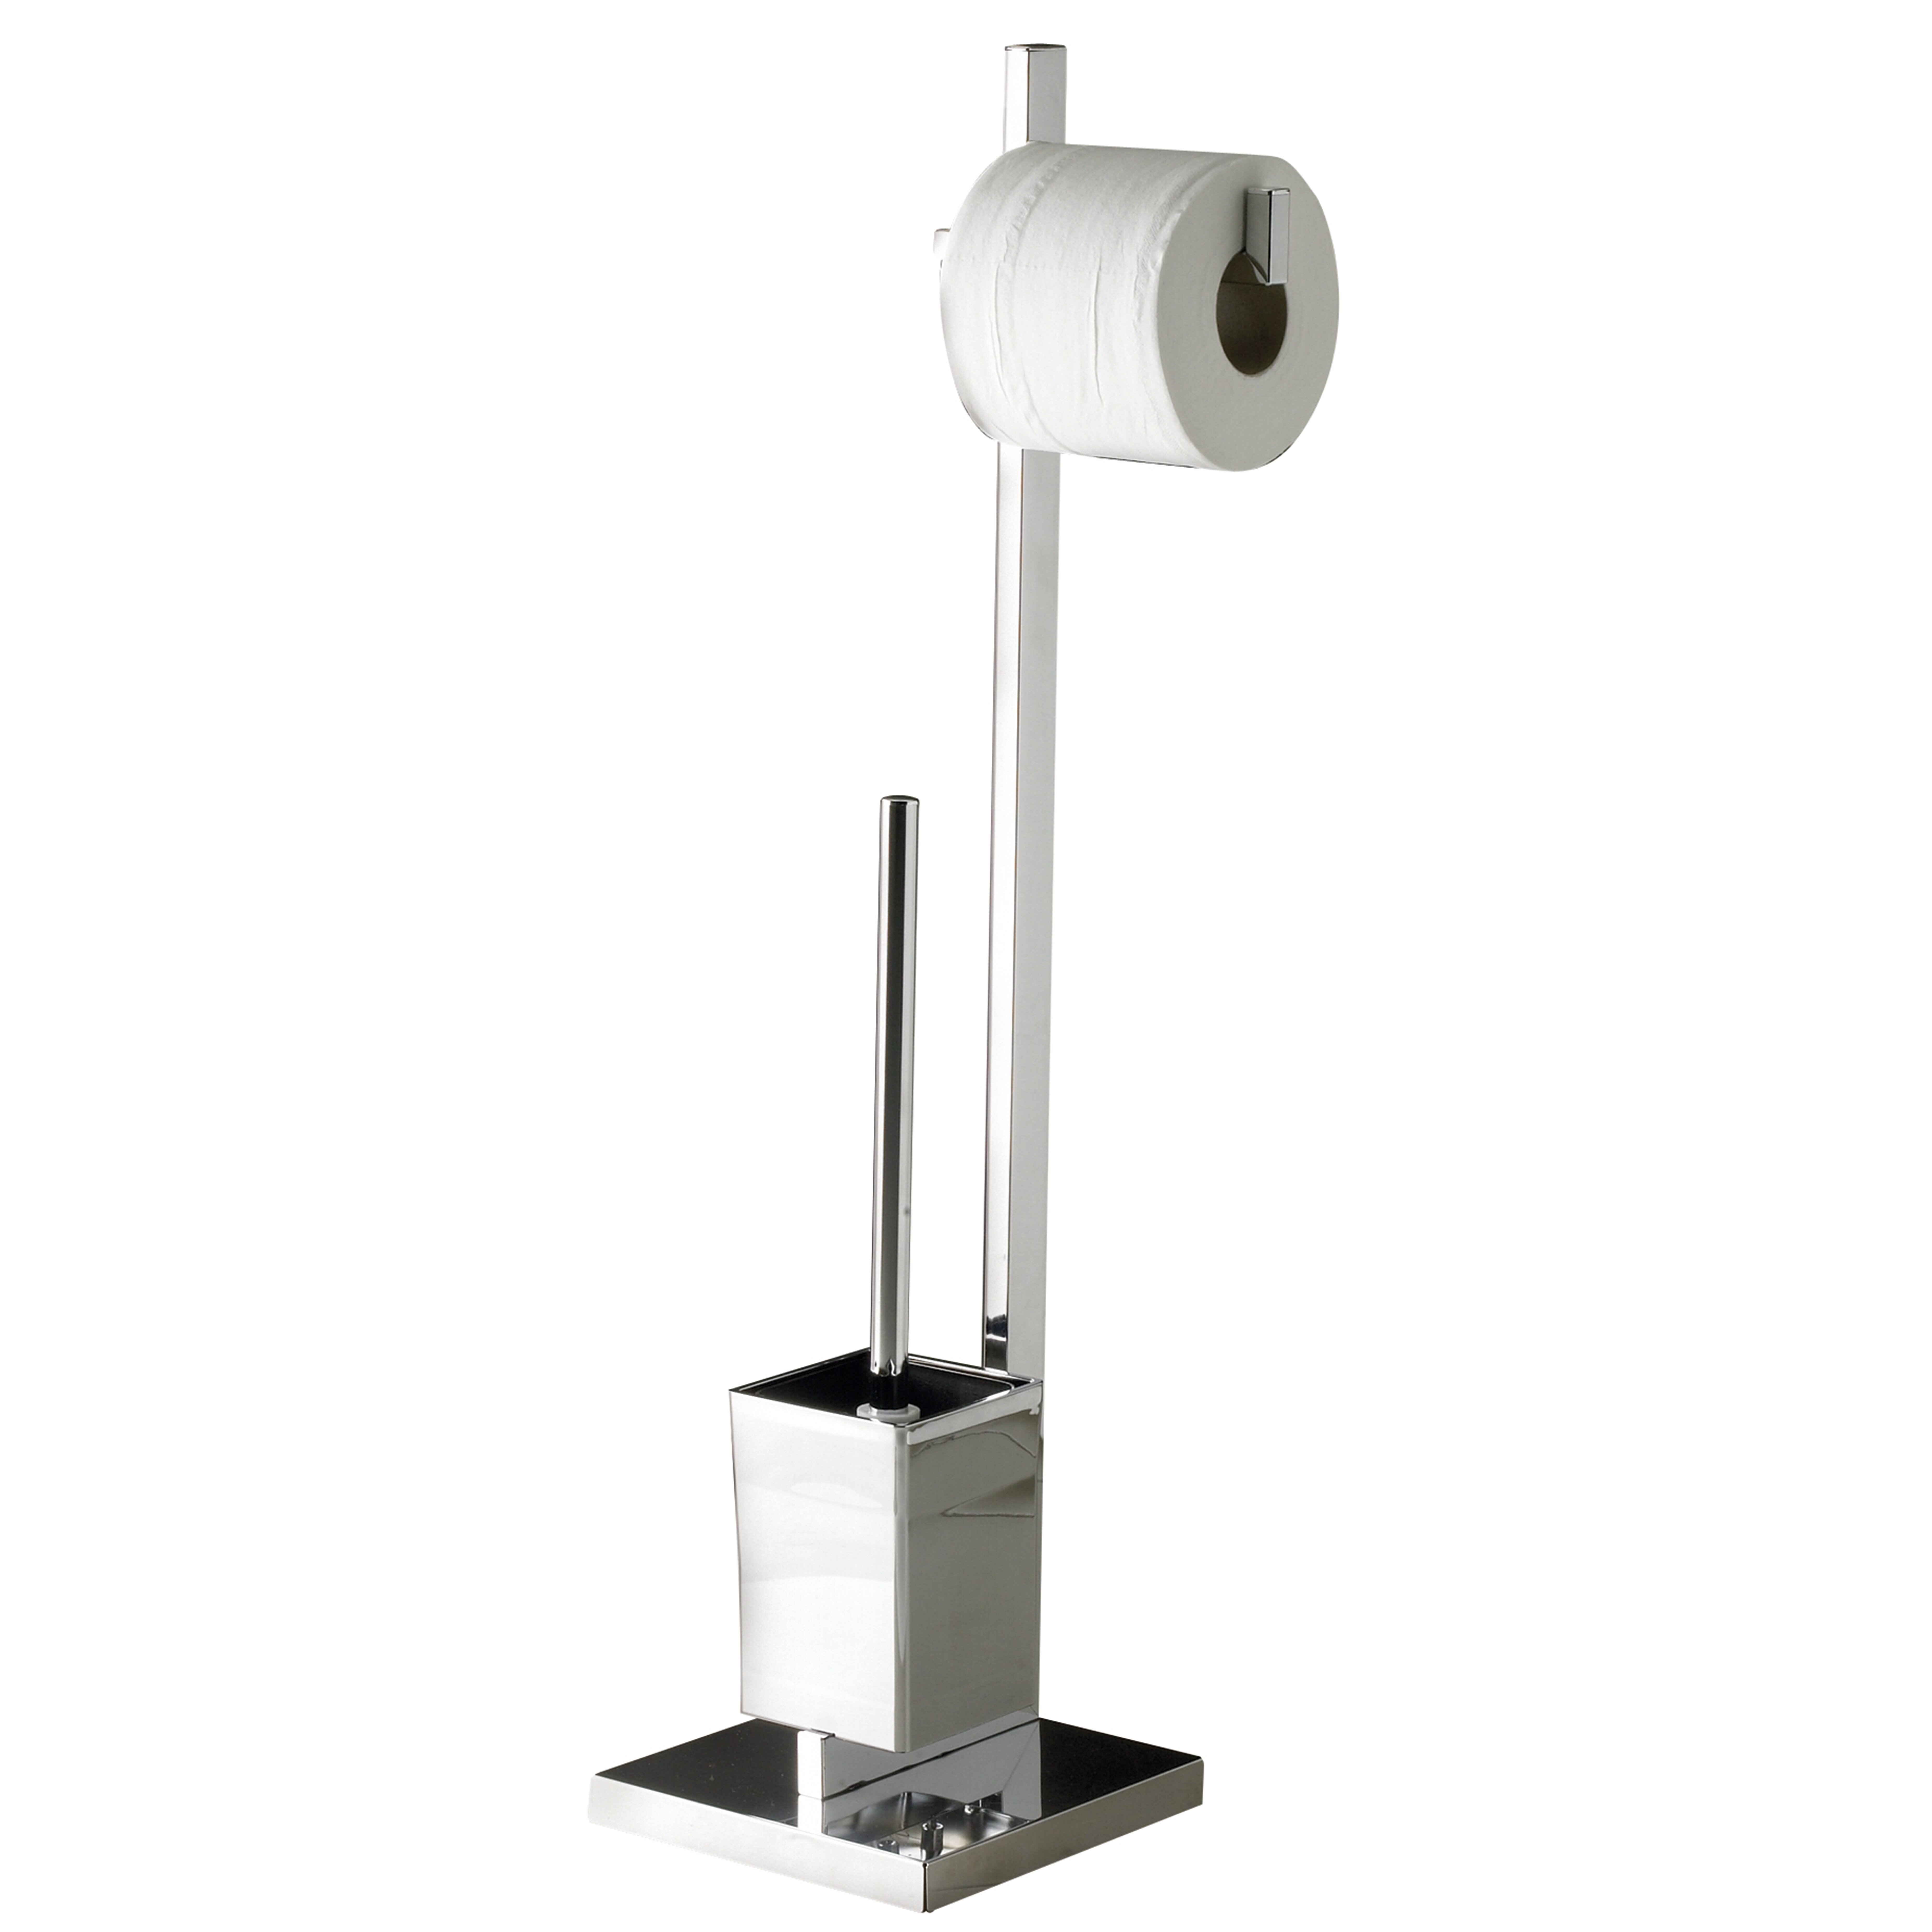 Belfry free standing toilet roll and brush holder Glass toilet roll holder